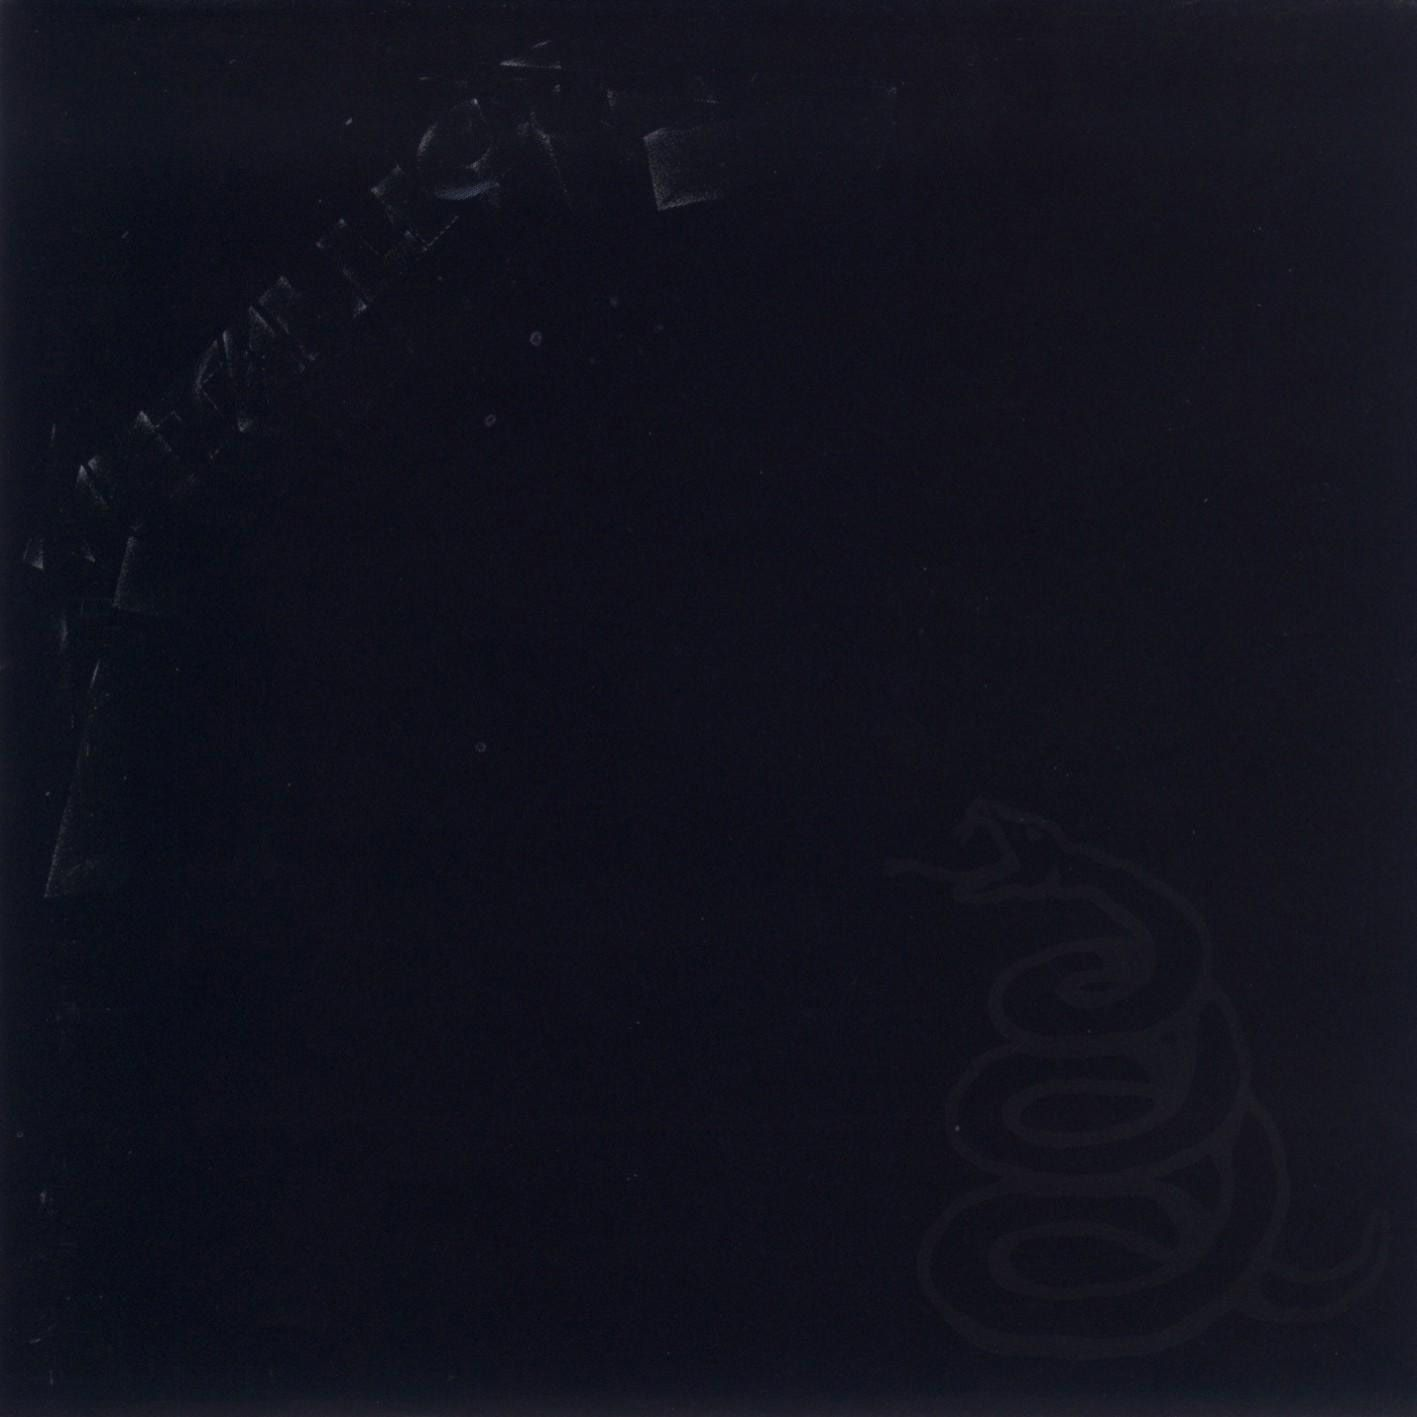 Metallica - Metallica (The Black Album) album cover